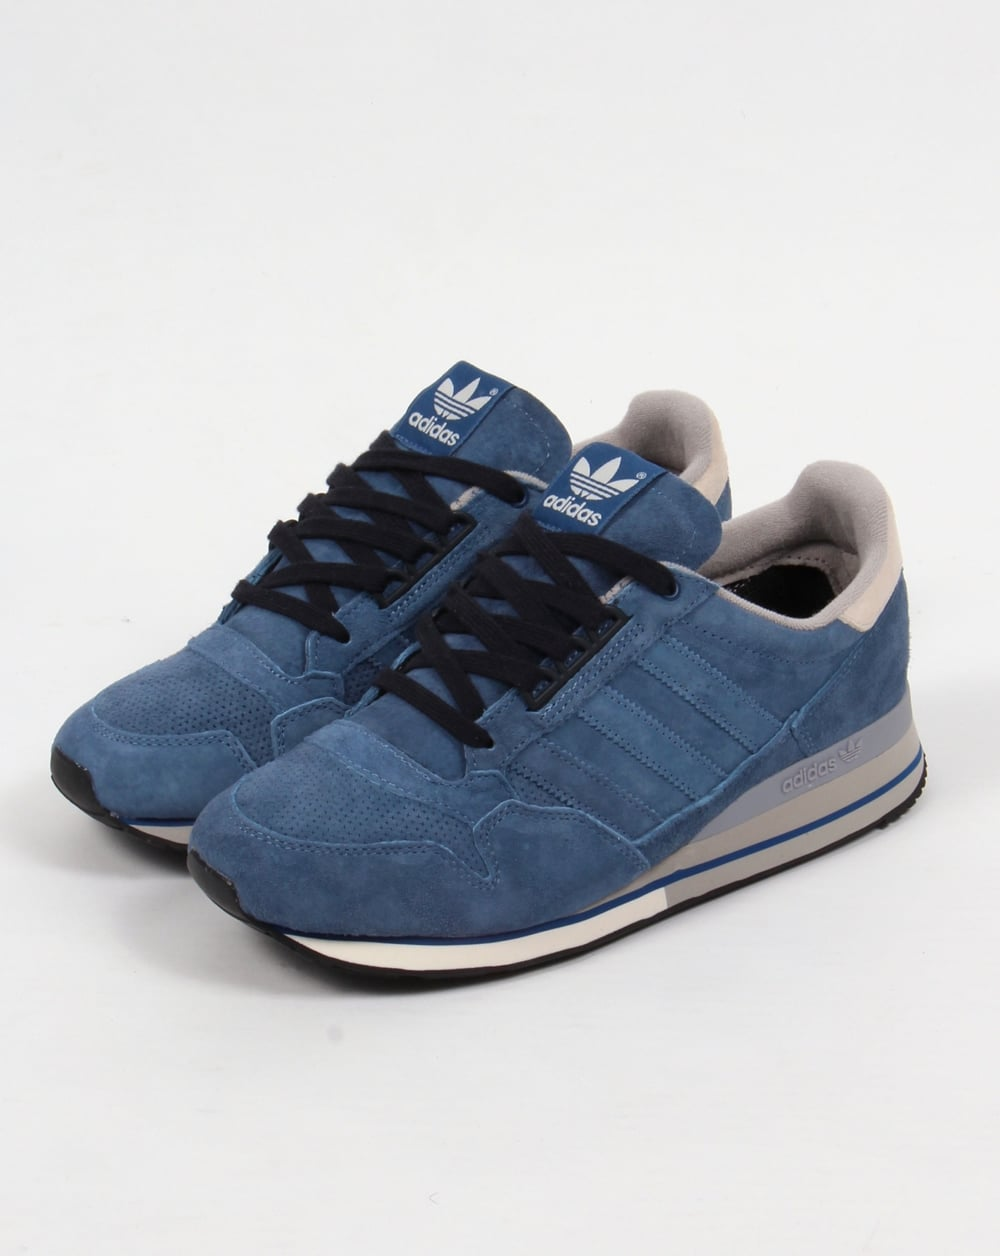 Adidas Zx 500 Blå vED1jCP